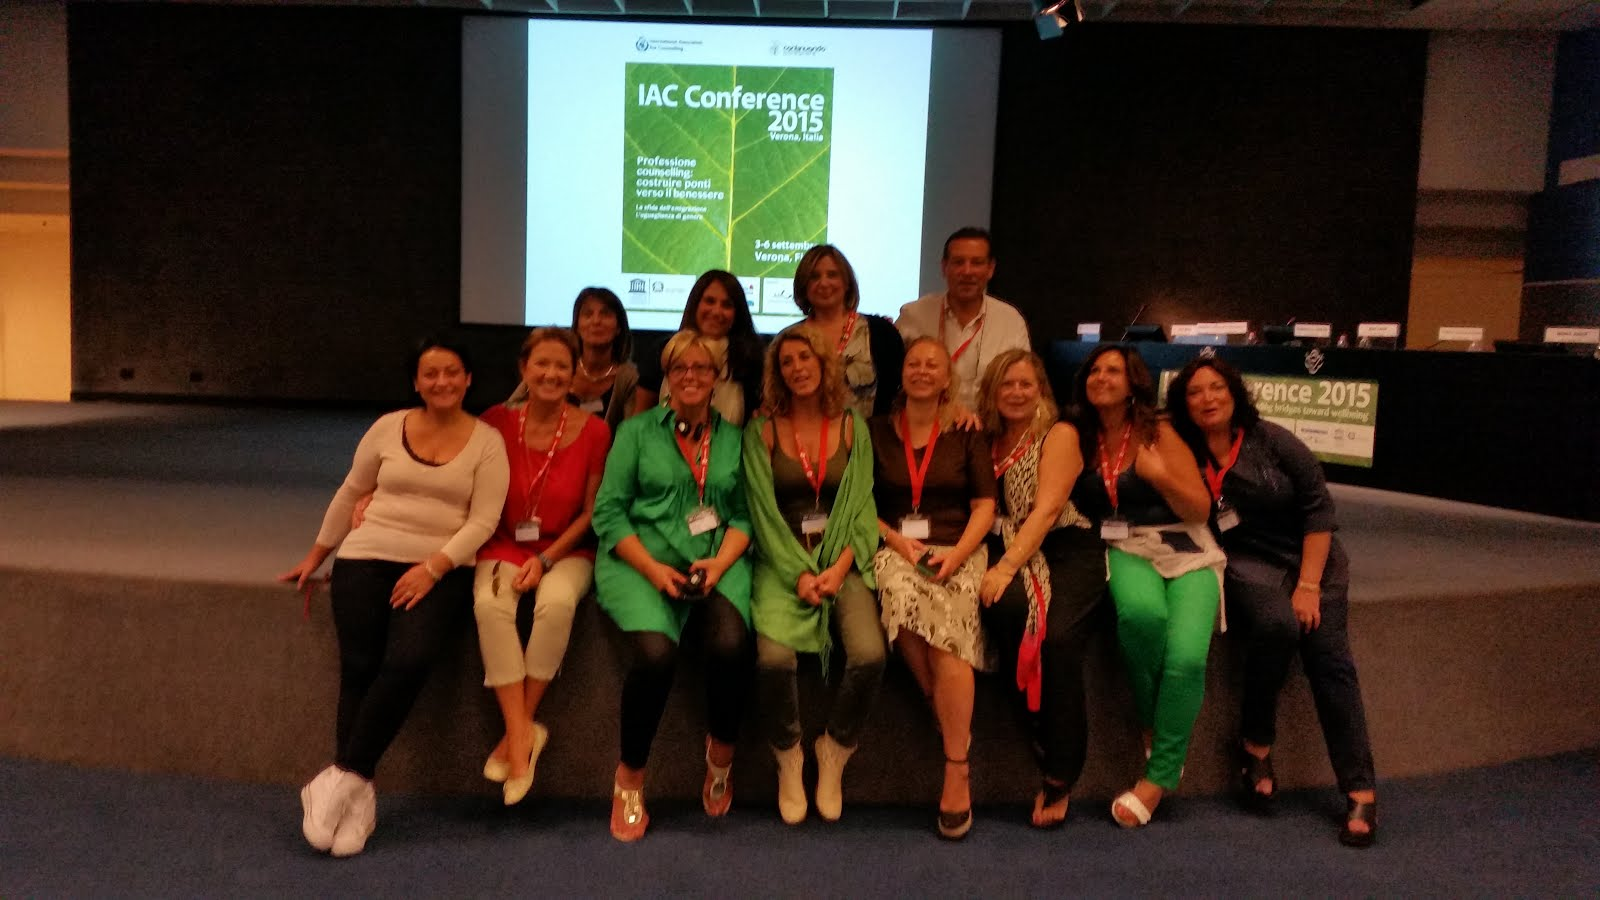 IAC CONFERENZA VERONA 2015  International Association for Counselling